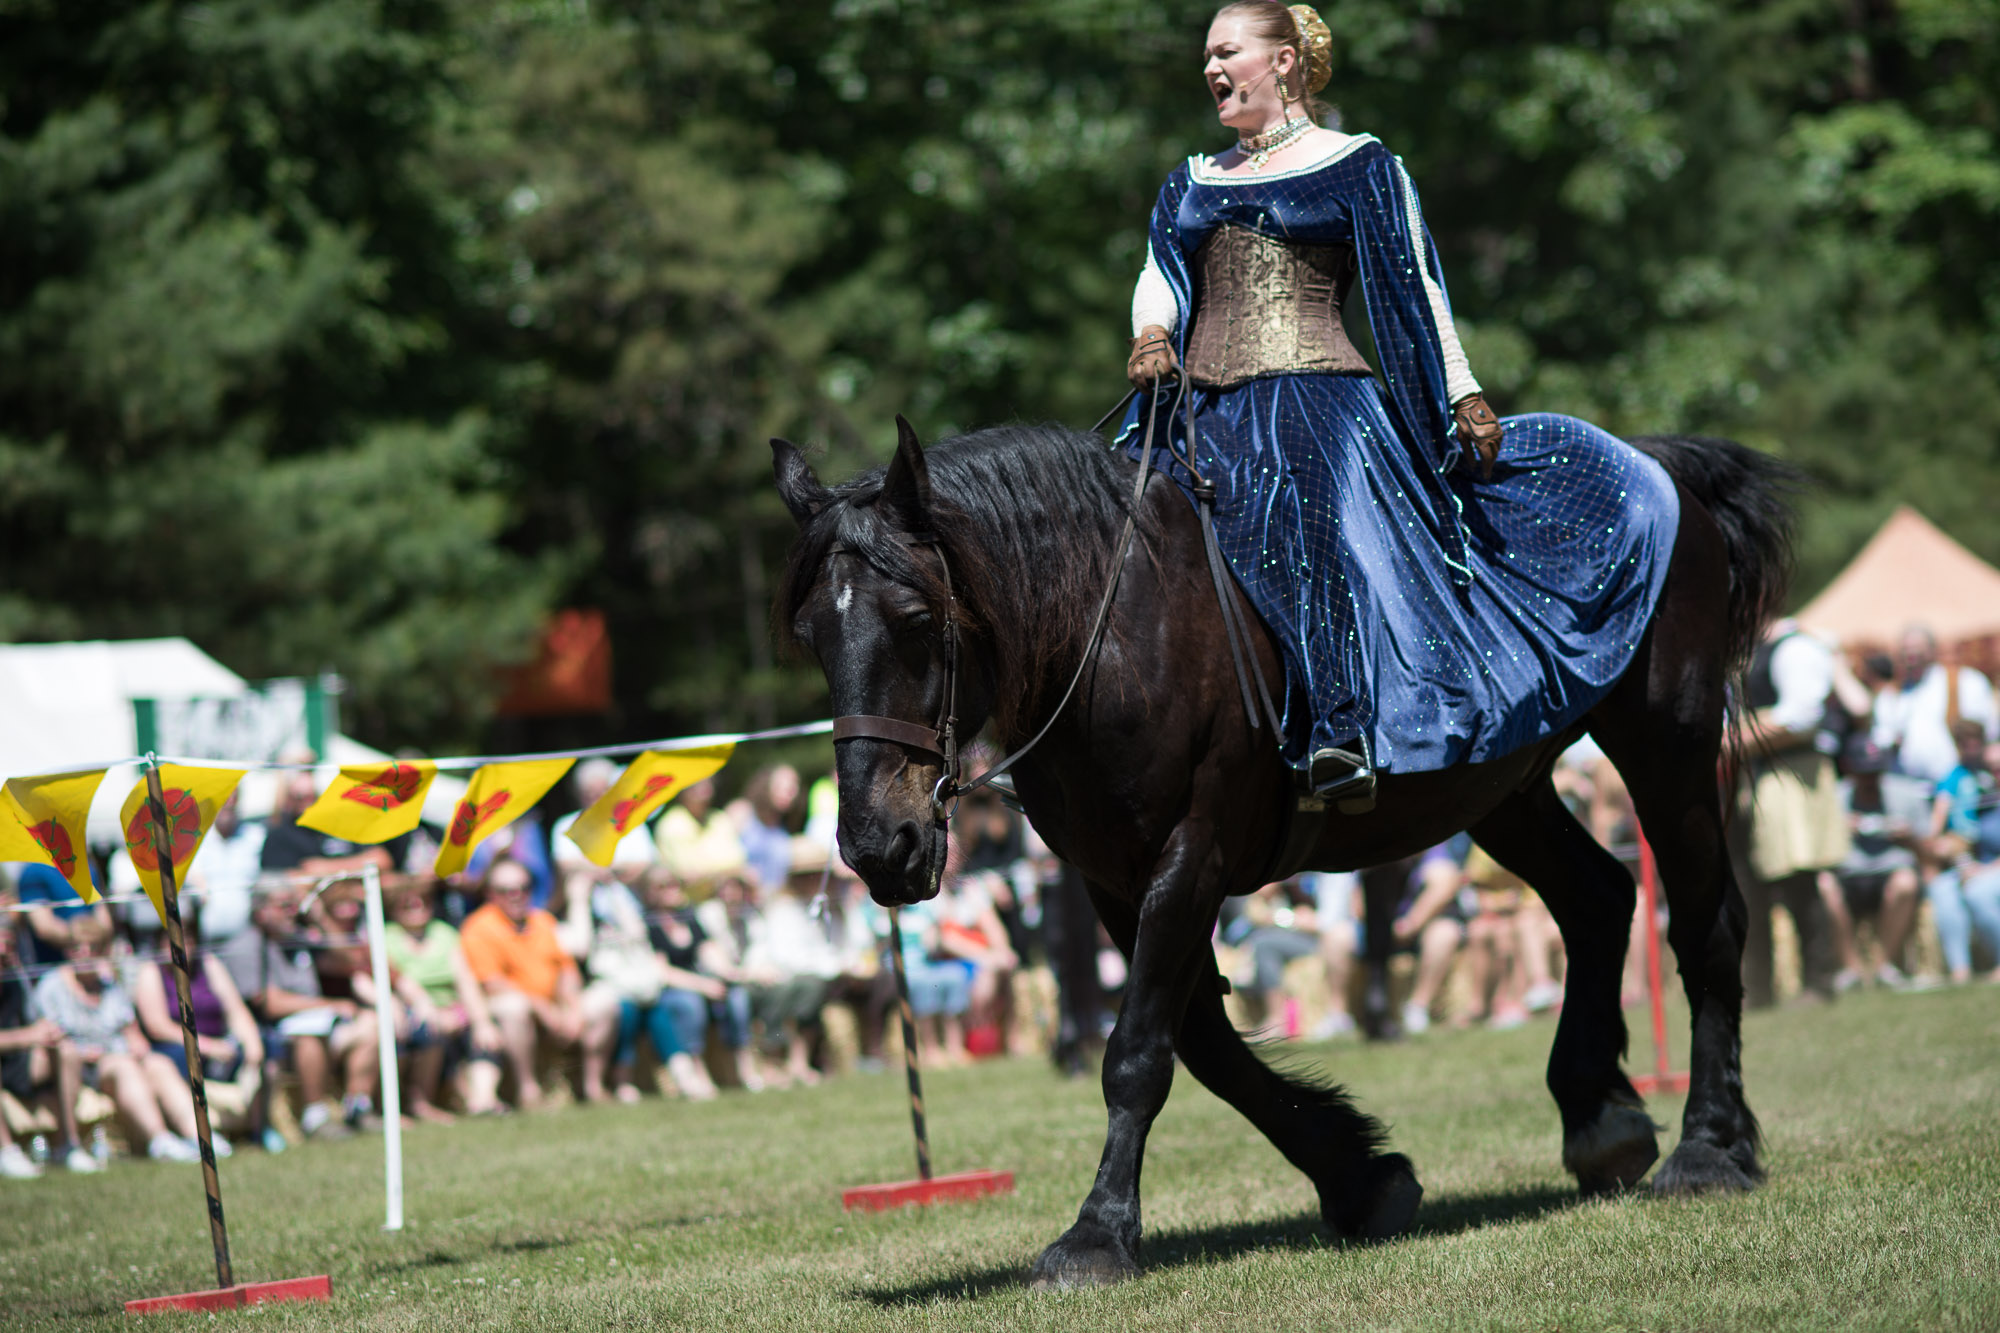 Announcer at a joust performance during a Renaissance Festival.